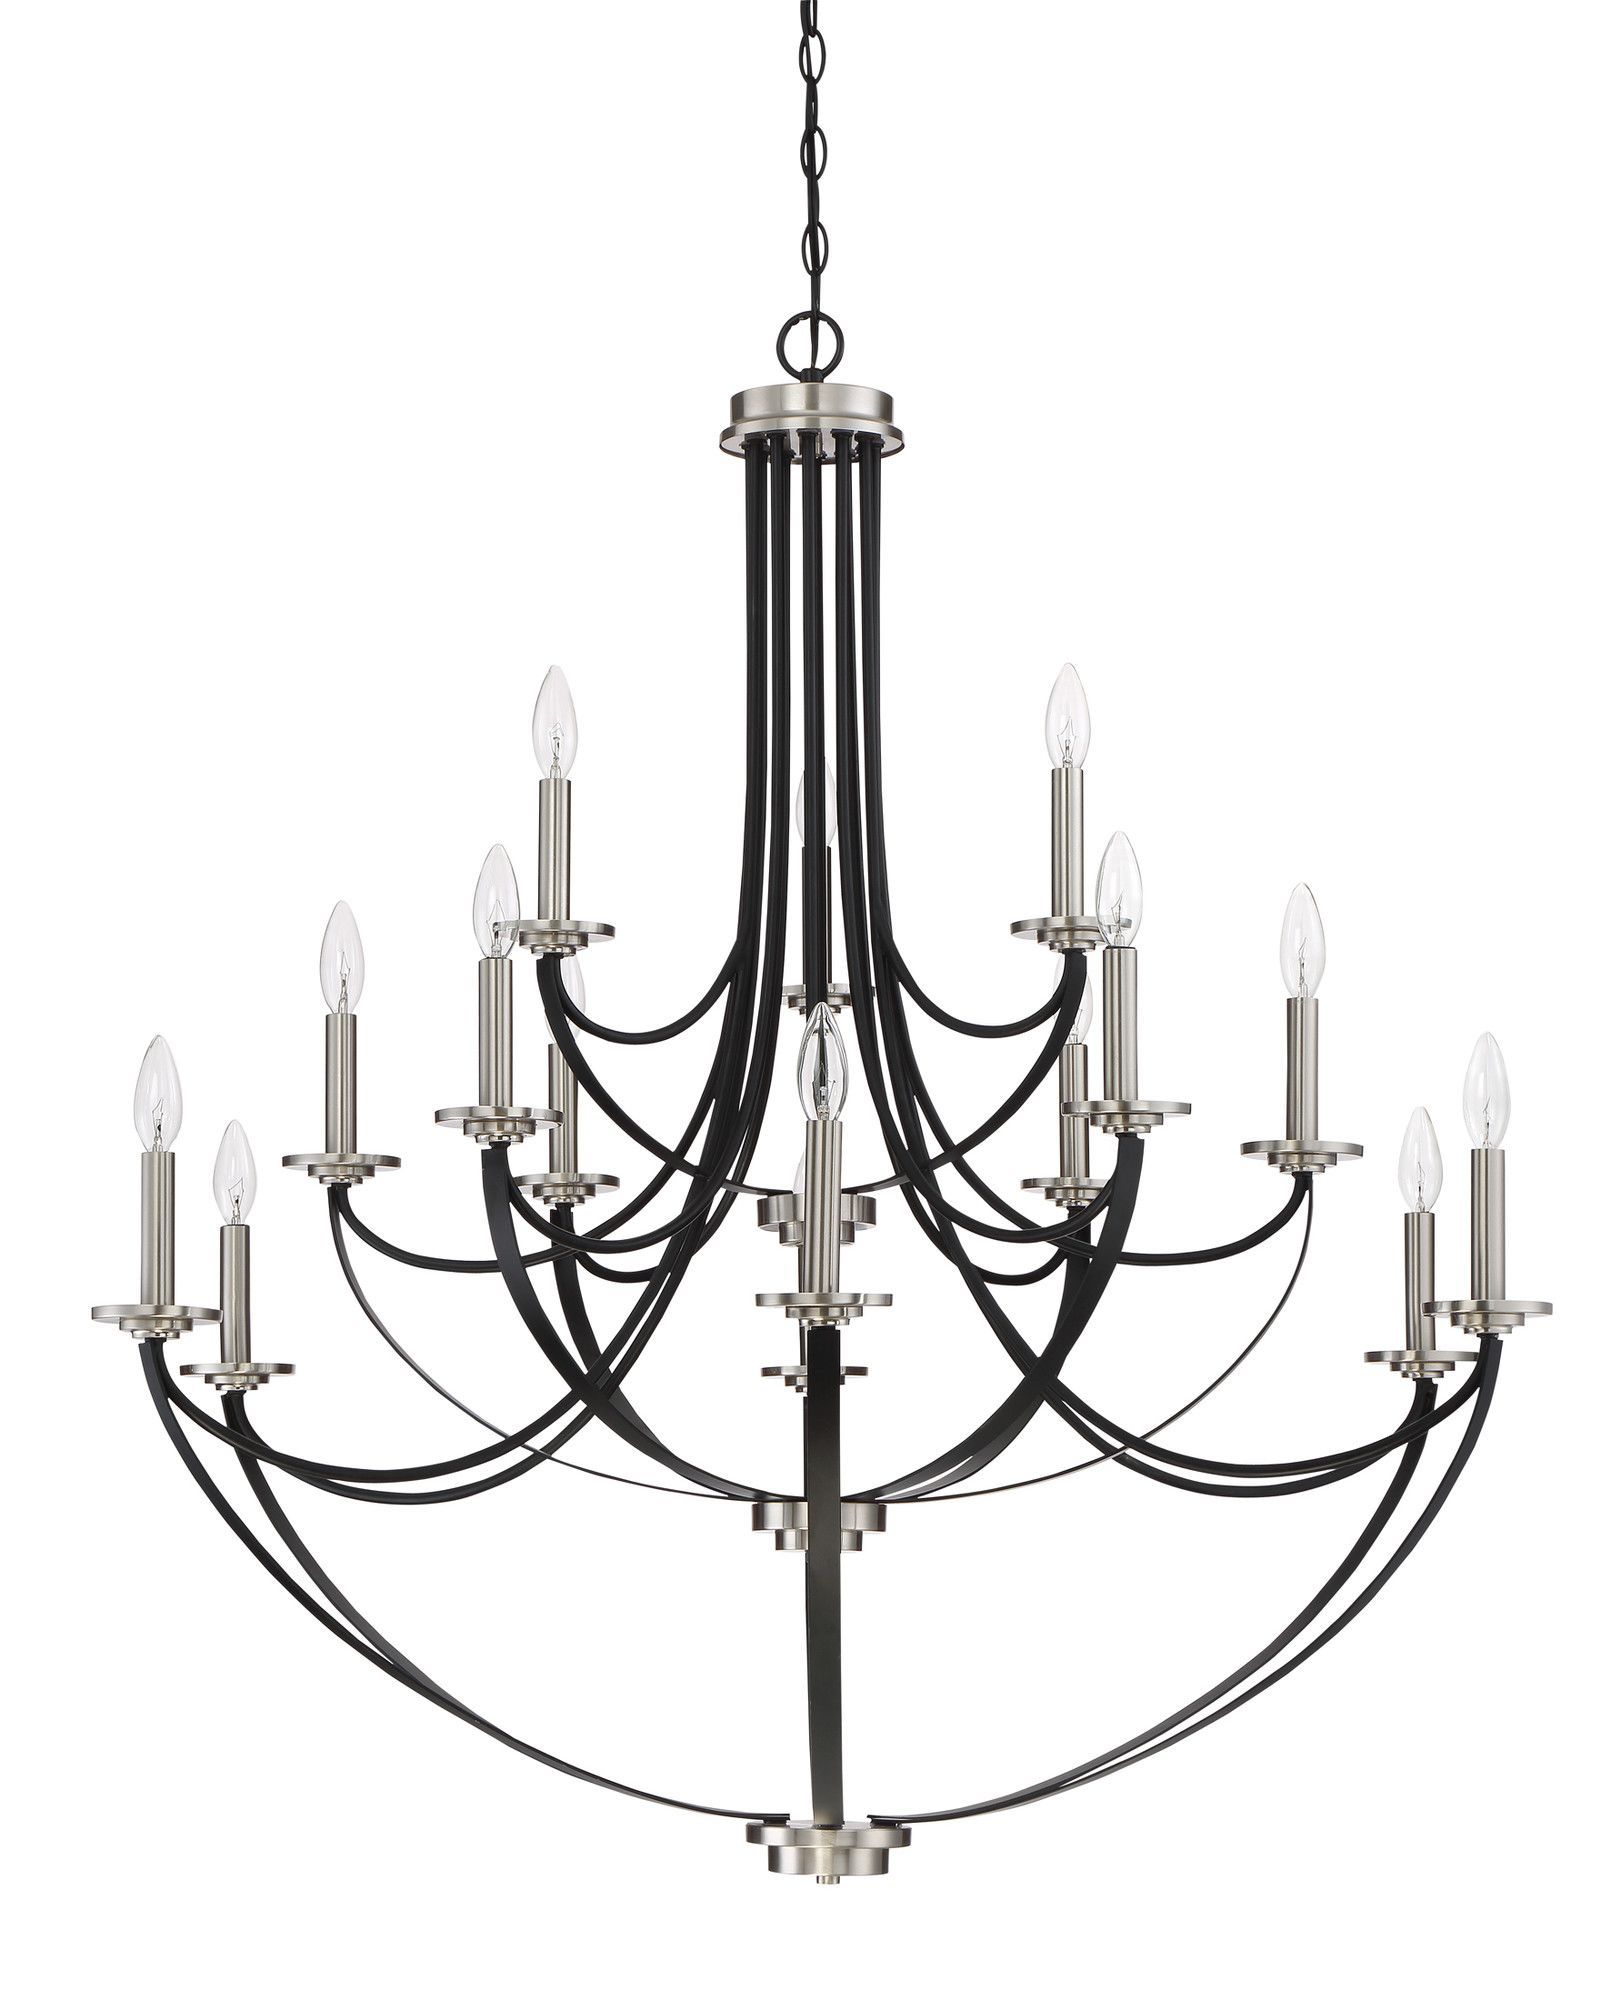 Cheyenne Mystic Black 15 Light Candle Style Chandelier